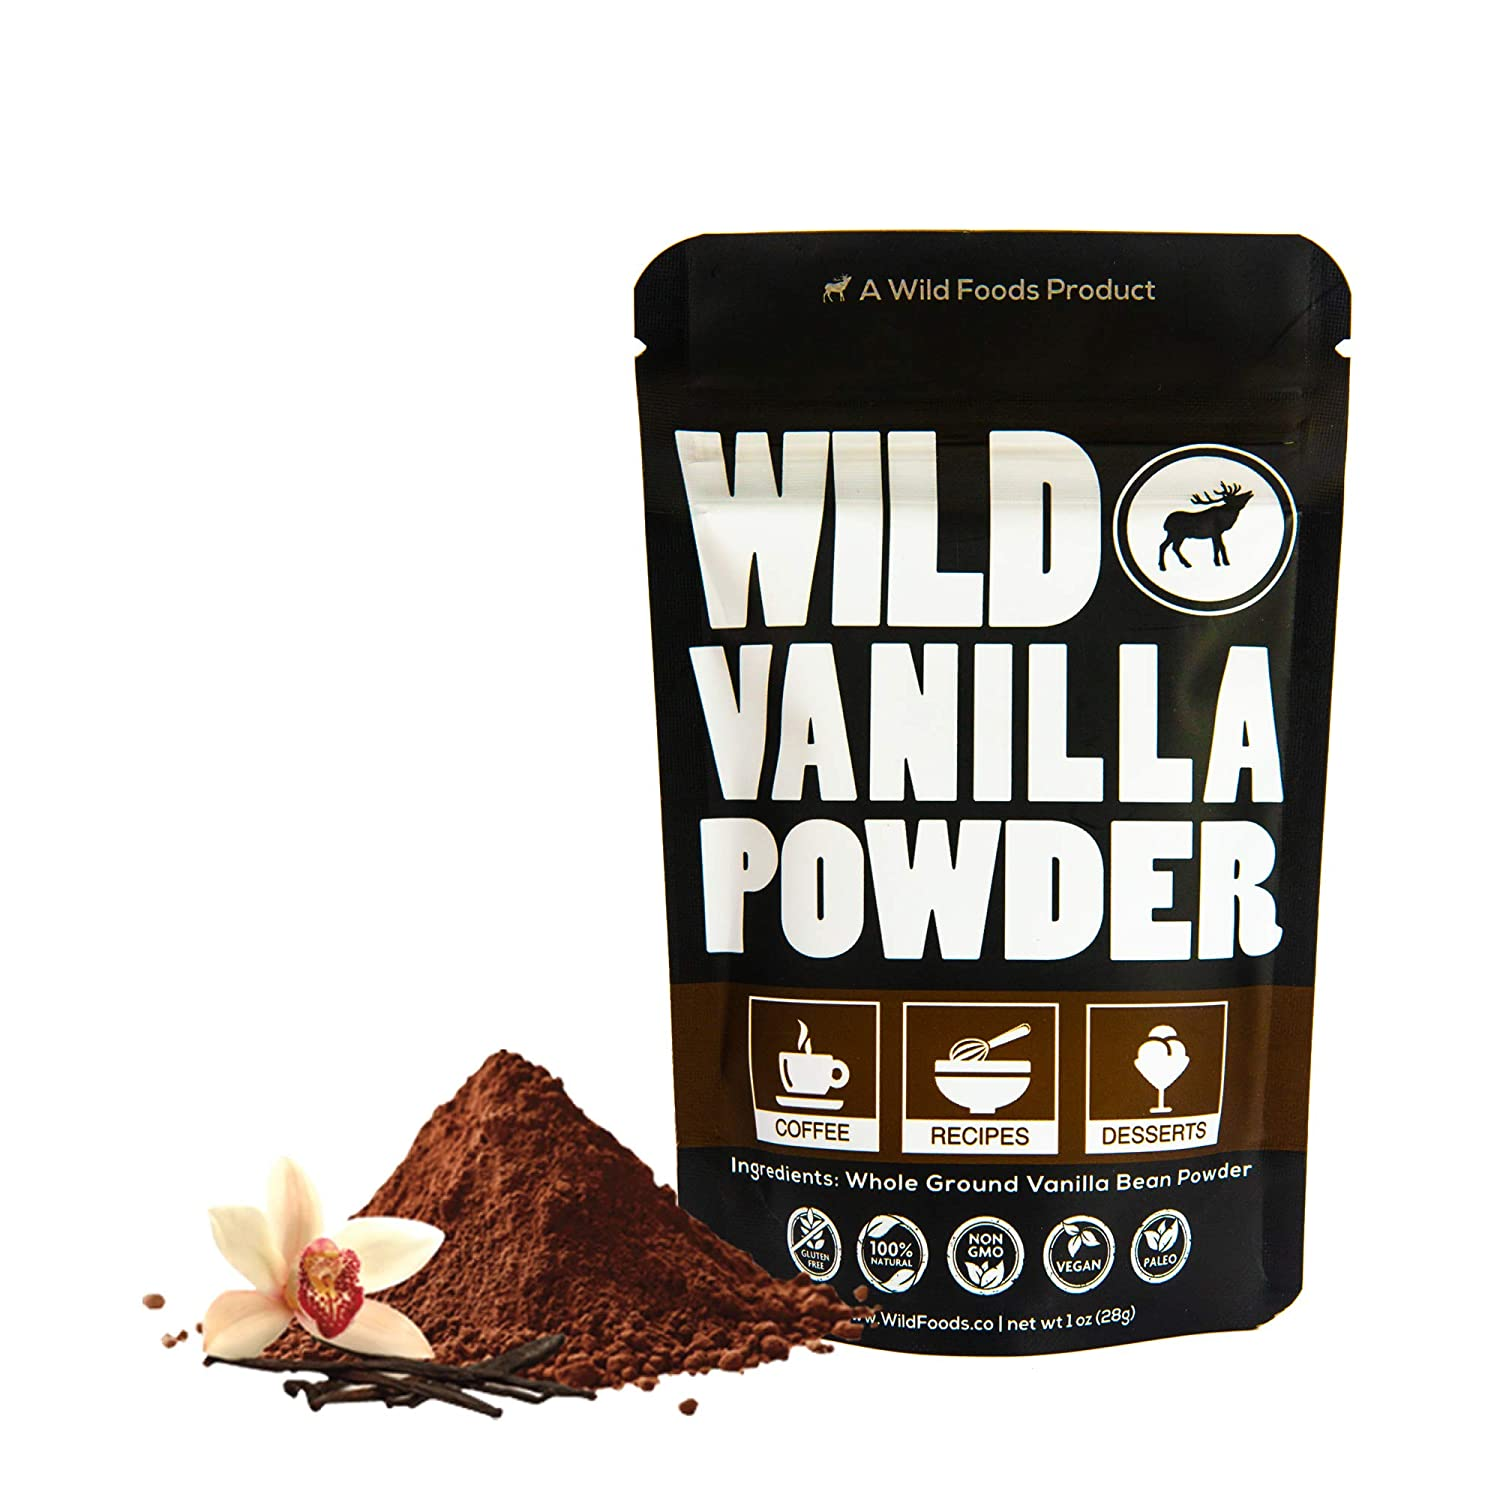 Wild Vanilla Bean Powder Organic & Raw - All Natural Pure Vanilla Powder from Madagascar - For Baking Cooking Coffee Flavoring & Smoothies - Unsweetened Gluten Free Non GMO Superfood Powder (1 ounce)